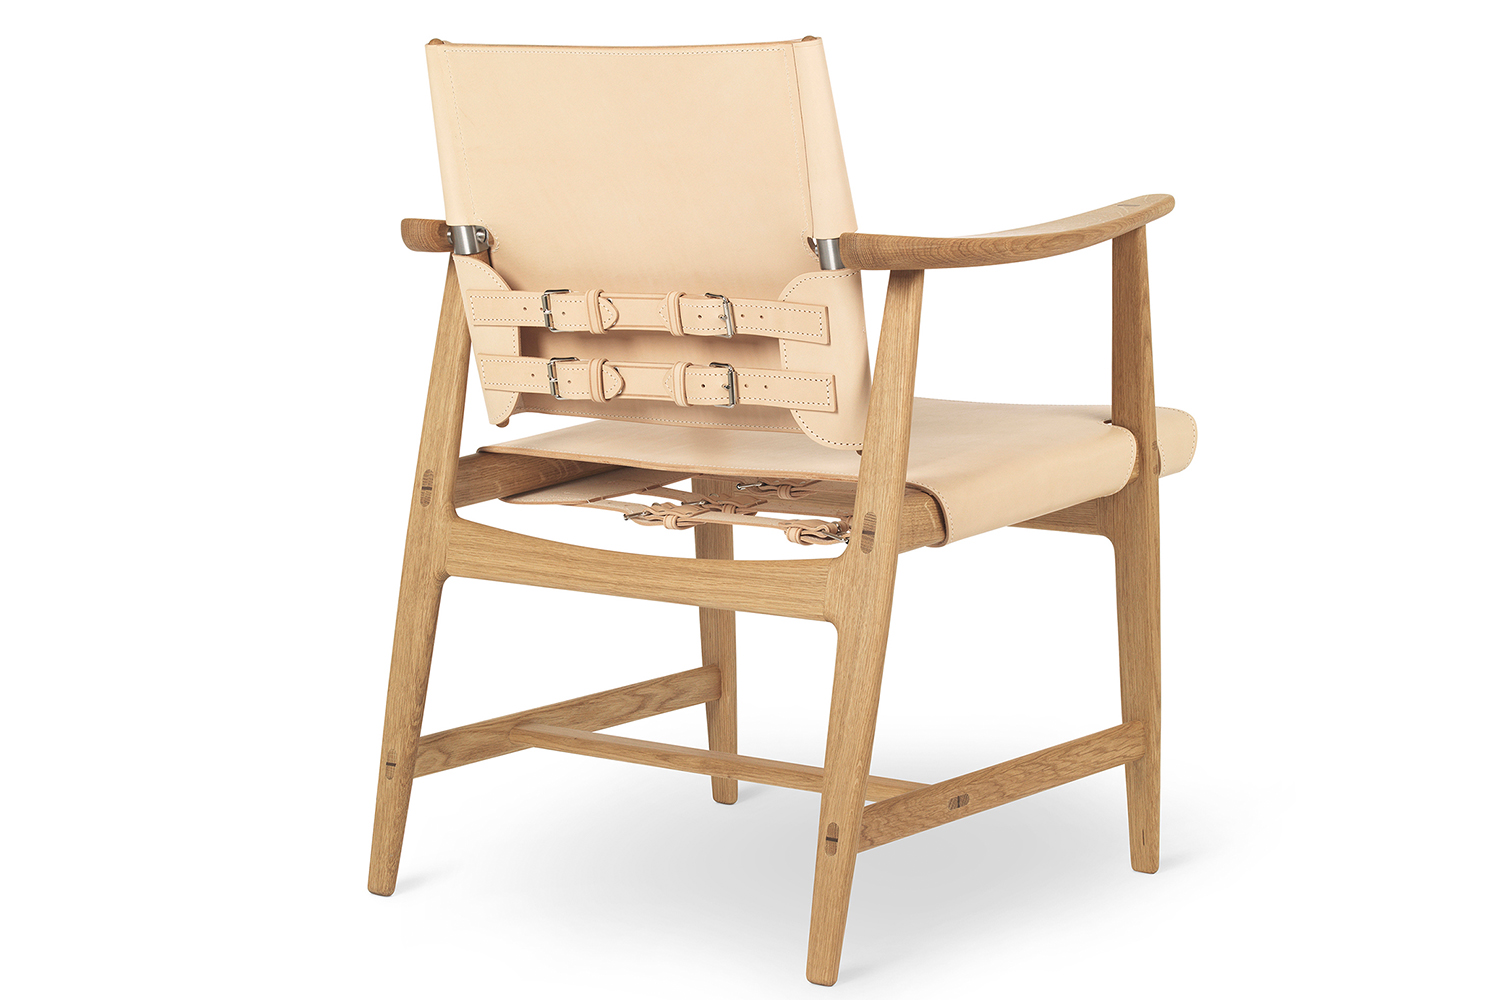 The chair's mortise and tenon joints are completed with wedges in contrasting wood.